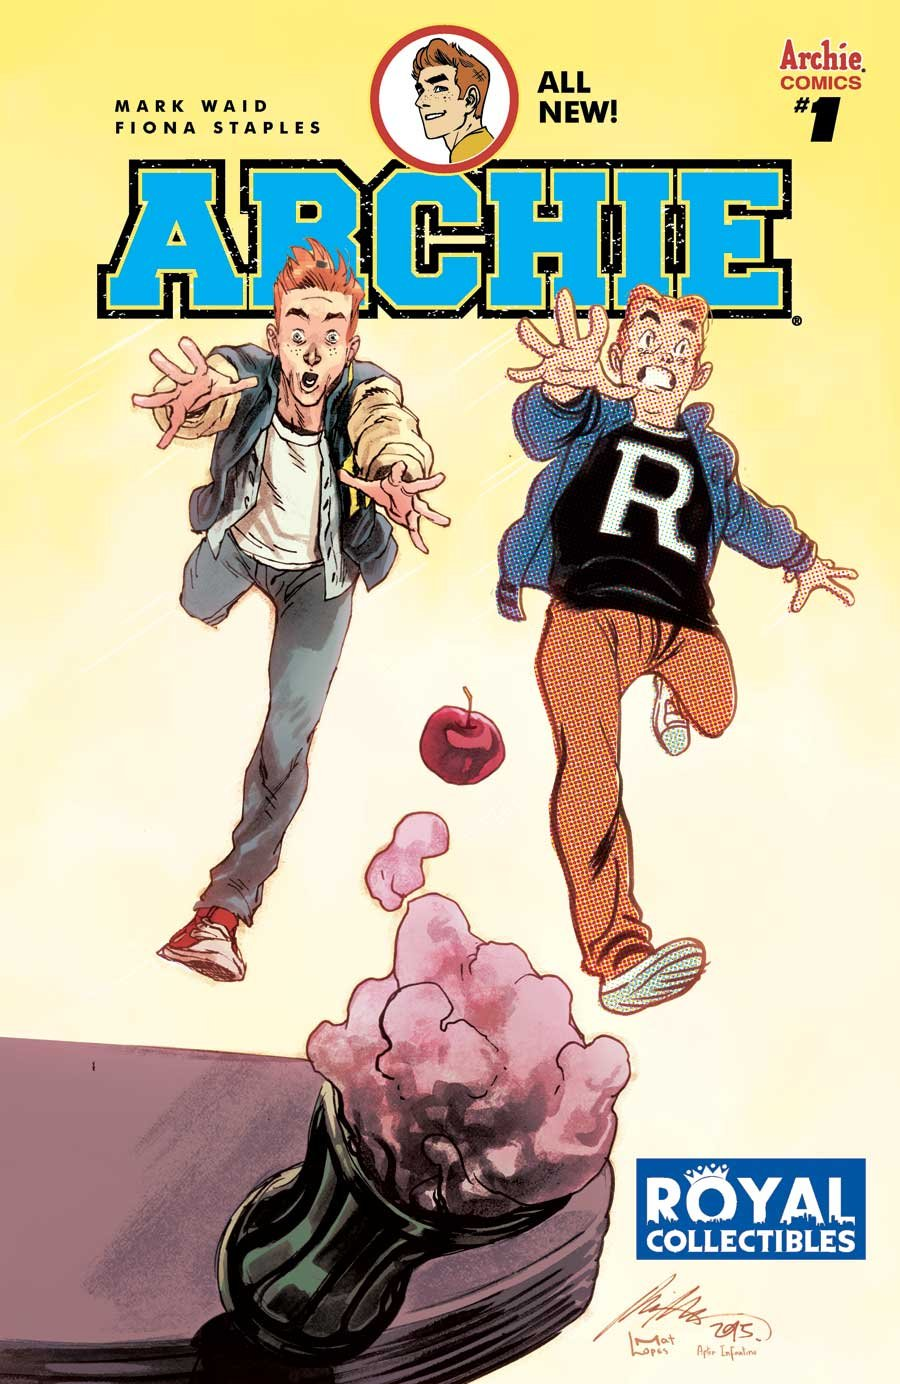 Archie Comics #1 Royal Collectibles Store Exclusive Variant Cover Rafael Albuquerque